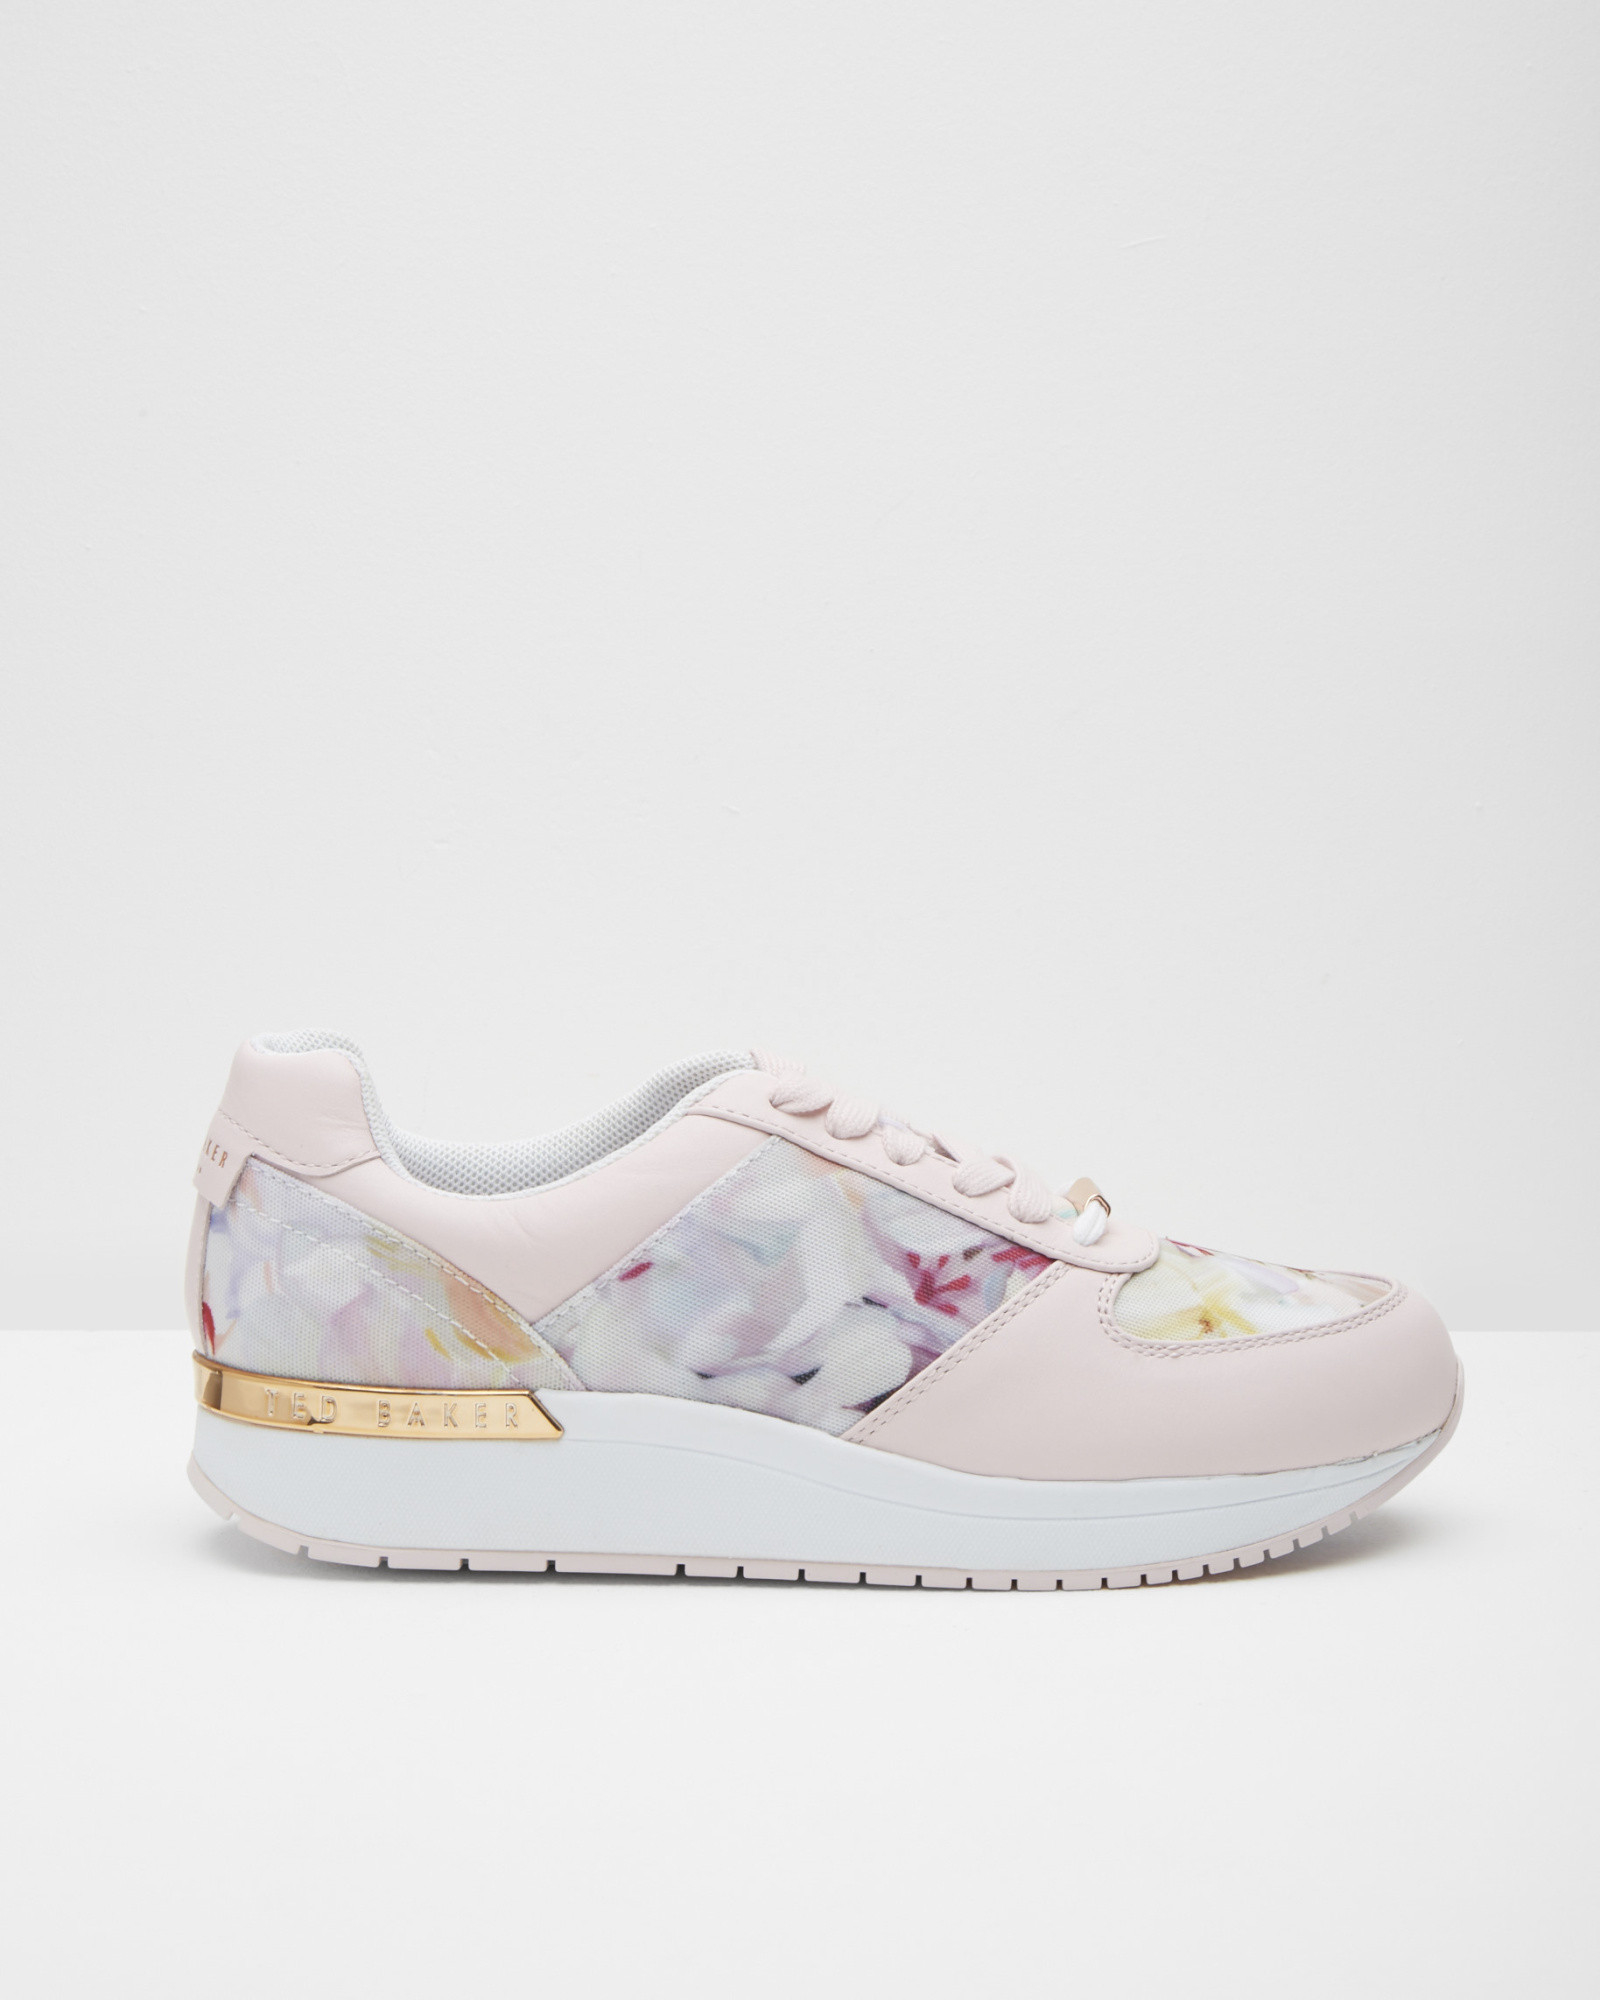 62ed0935d87fb Ted Baker Floral Print Trainers in Pink - Lyst